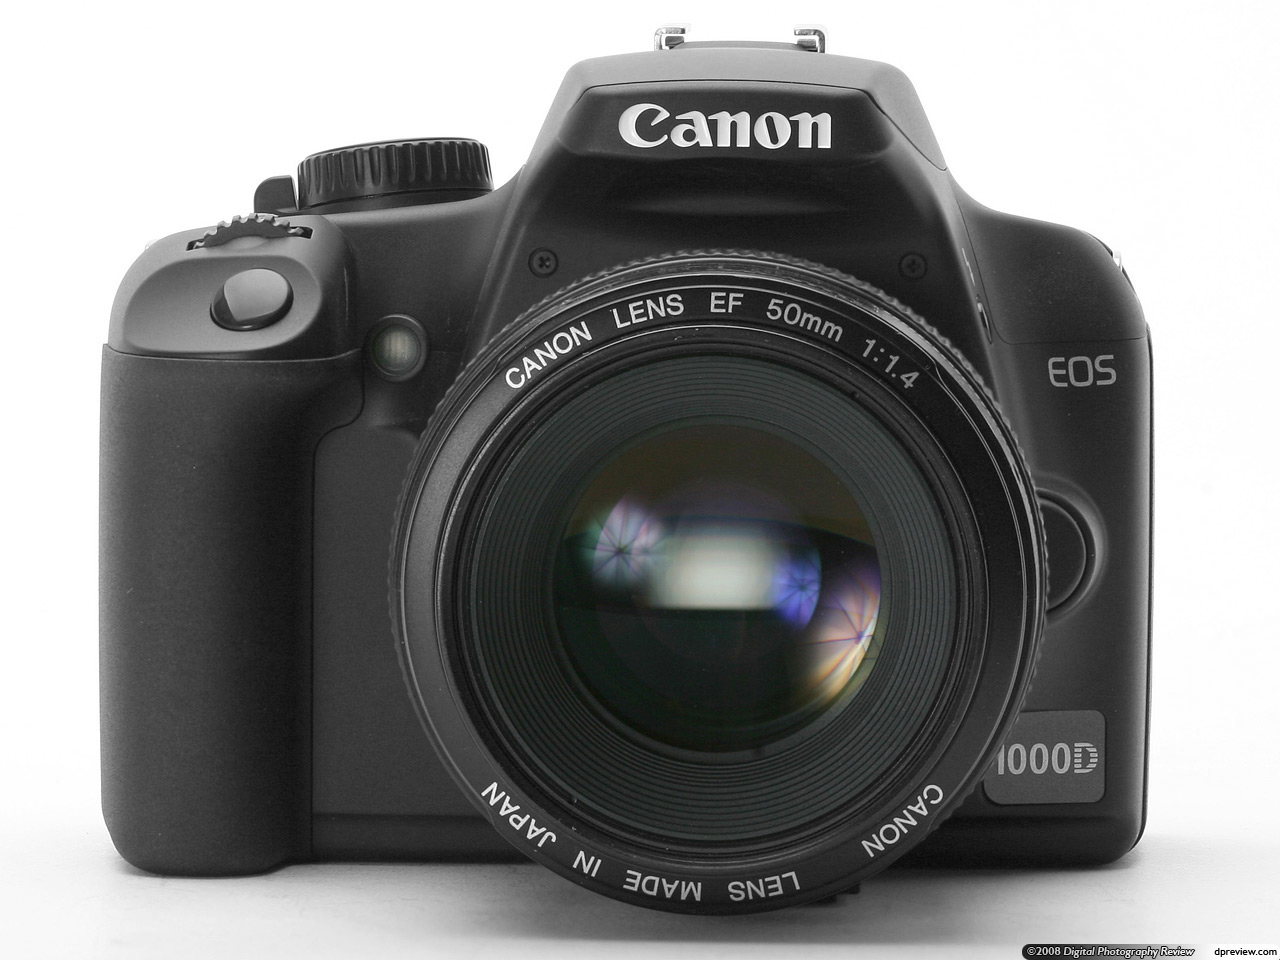 Rreview based on a production Canon EOS 1000D